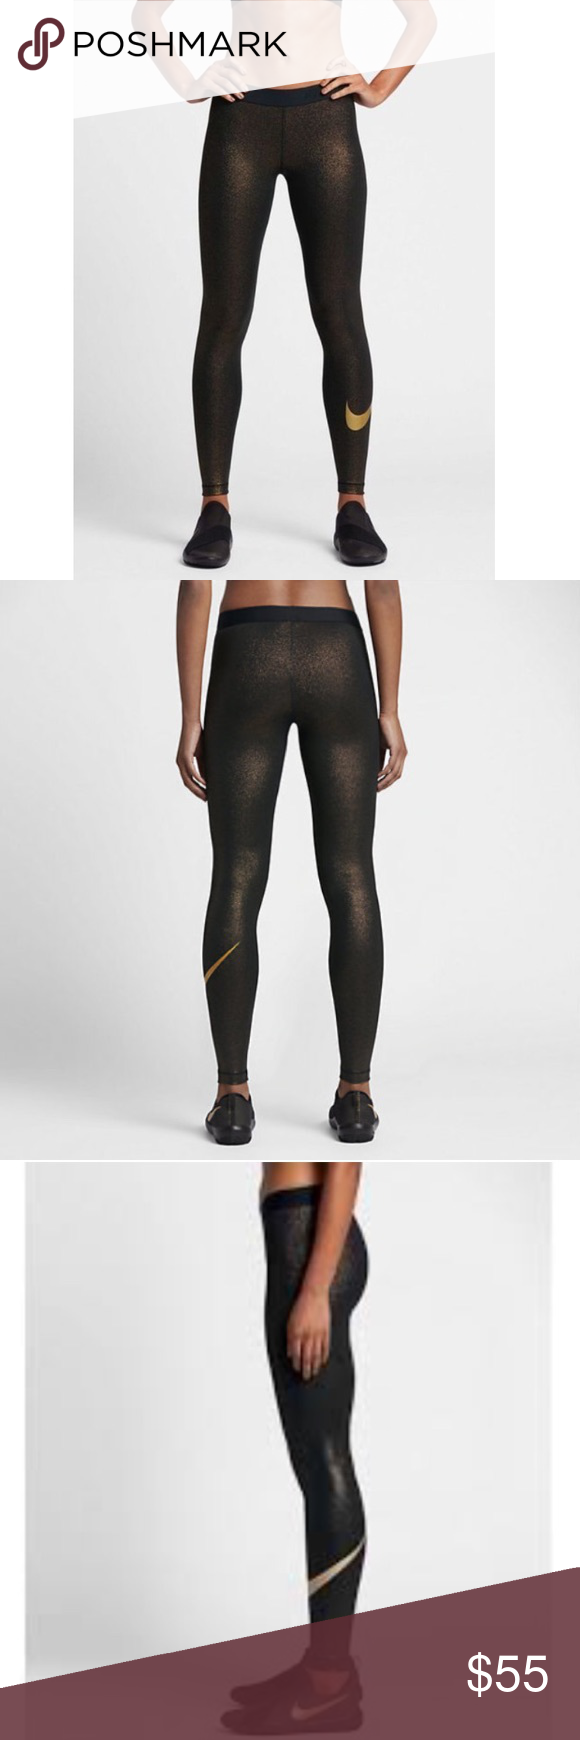 51462d457bb2a Nike Pro Sparkle Training Tights 881778-010 NWT, never been worn. The Nike